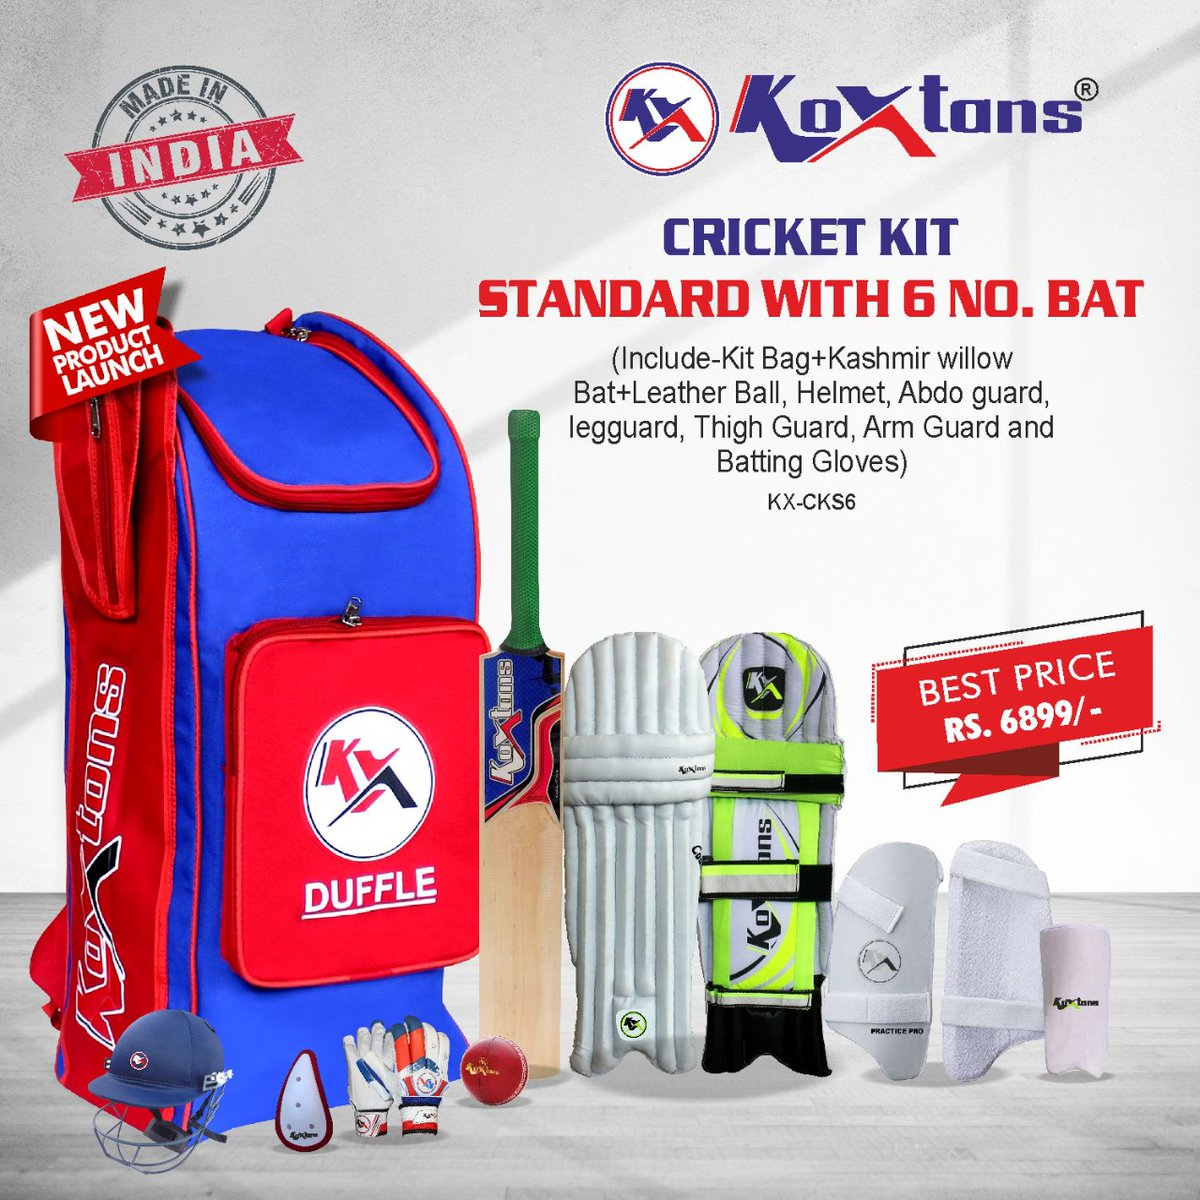 Newly Launched !Complete Cricket Kit. ✅Standard with 6 No. Bat  ✅Youth with 5 no. Bat  ✅Kids with 4 No. Bat made from selected Kashmir willow , Light in weight, Hand crafted for perfect balance. DM us on 9068811125  #cricketbats #cricketindia #indian #rohitsharma #viratkohli https://t.co/ZKQ0nZ8pQQ